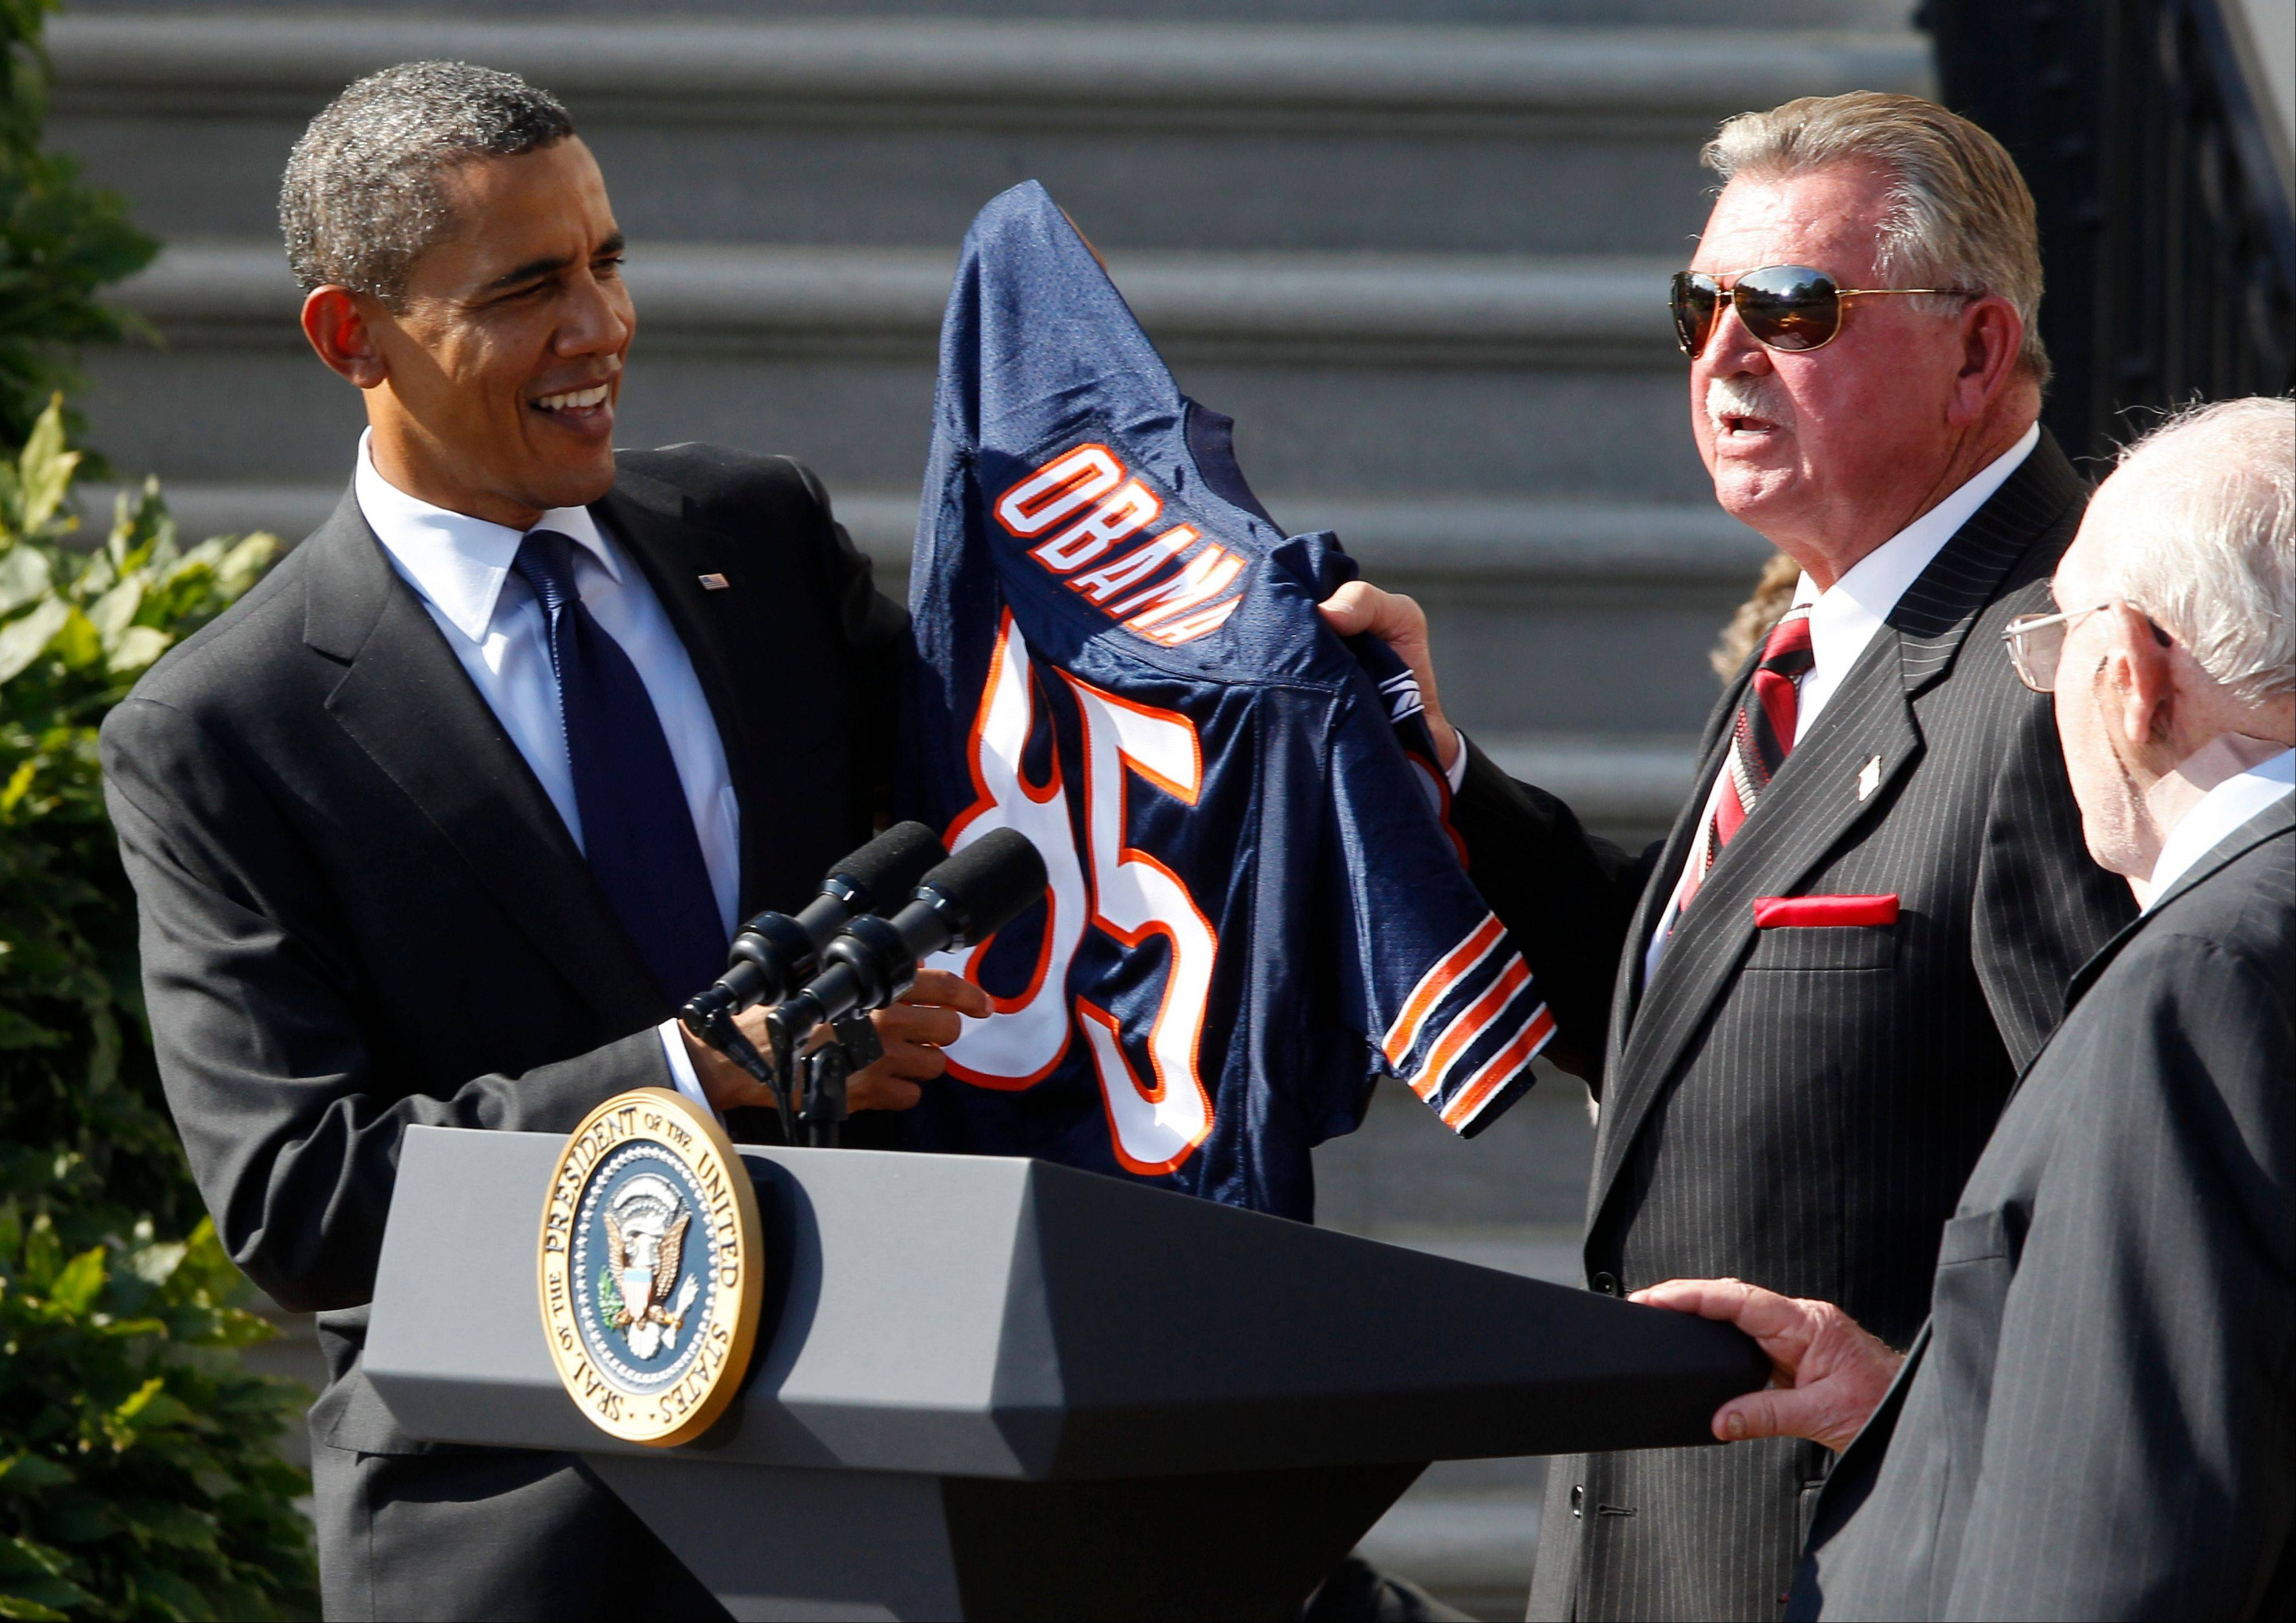 President Barack Obama is presented with a team jersey by head coach Mike Ditka as defensive coordinator Buddy Ryan stands at right as the 1985 Super Bowl XX Champions Chicago Bears football team are honored at a ceremony on the South Lawn of the White House in Washington, Friday, Oct. 7, 2011.